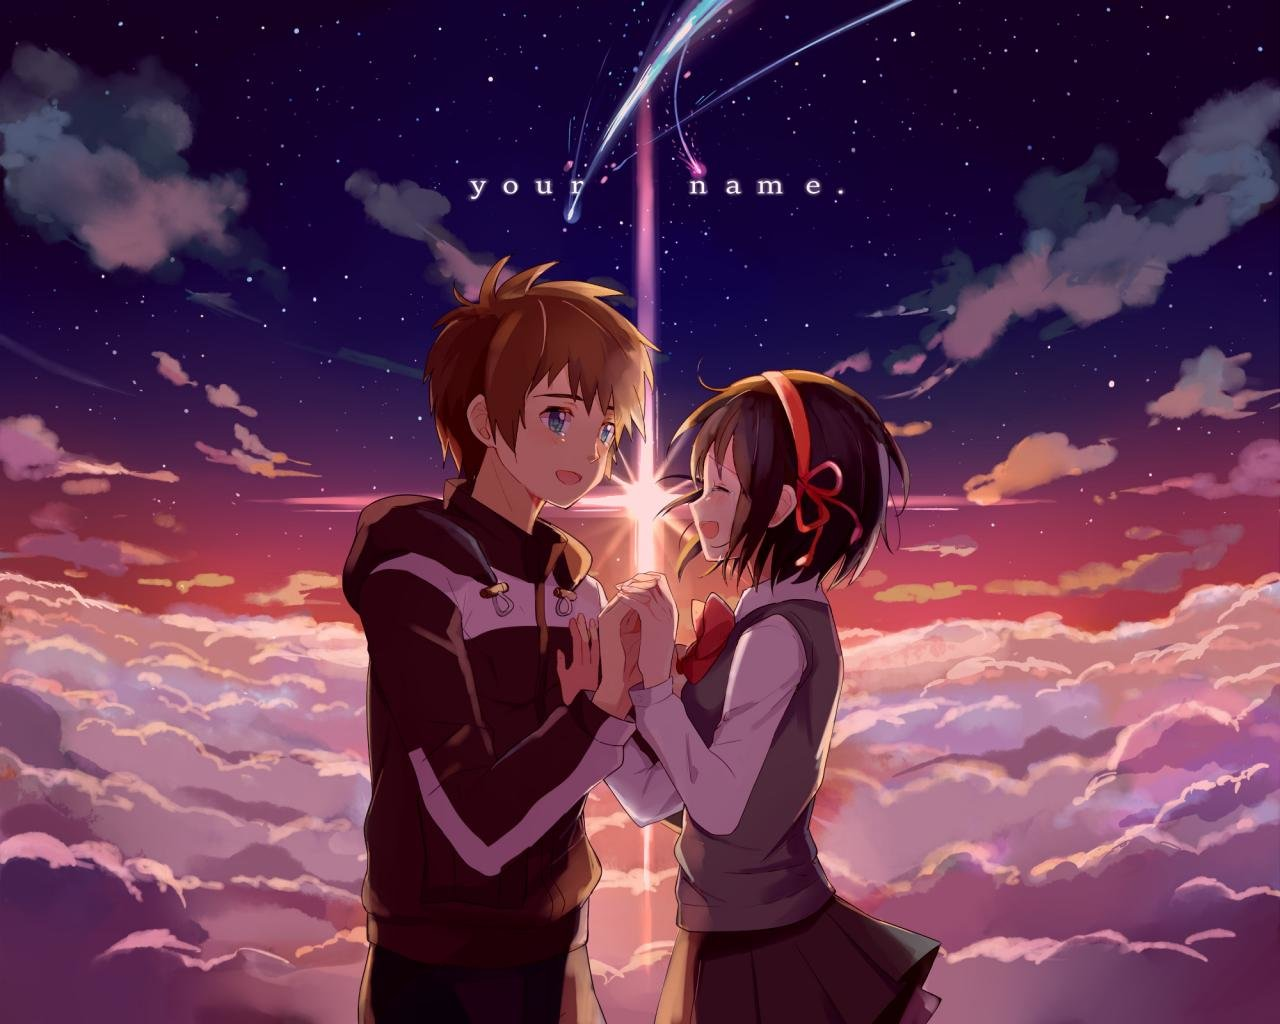 Your Name Wallpapers 1280x1024 Desktop Backgrounds